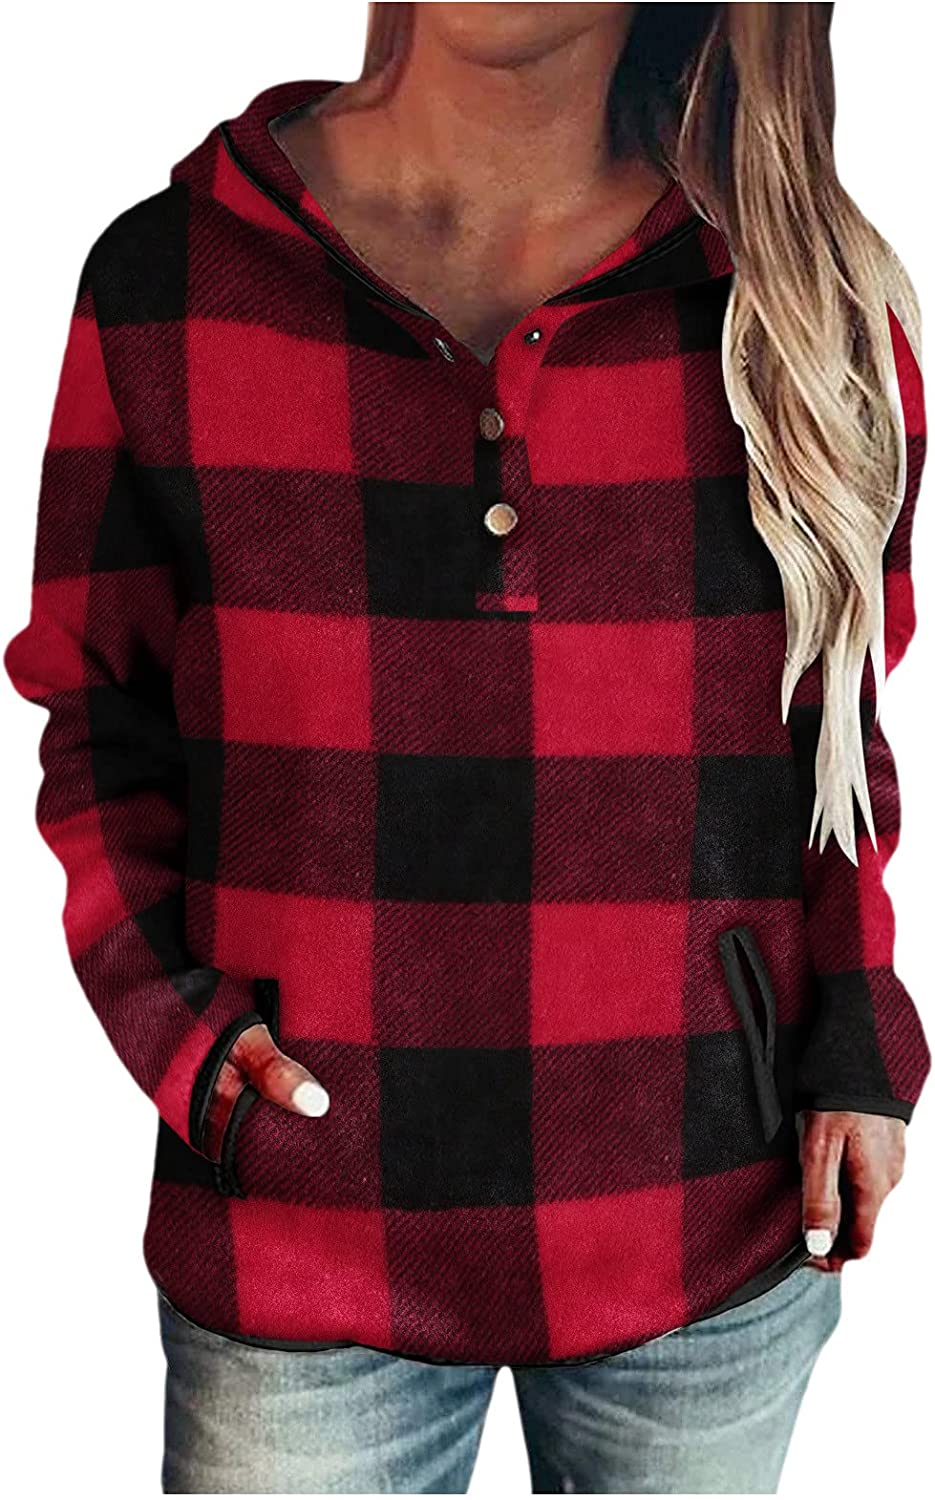 NHGJ Hoodies for Womens Button Down Pullovers Casual Solid Color Block Long Sleeve Hooded Sweatshirt with Pocket Drawstring